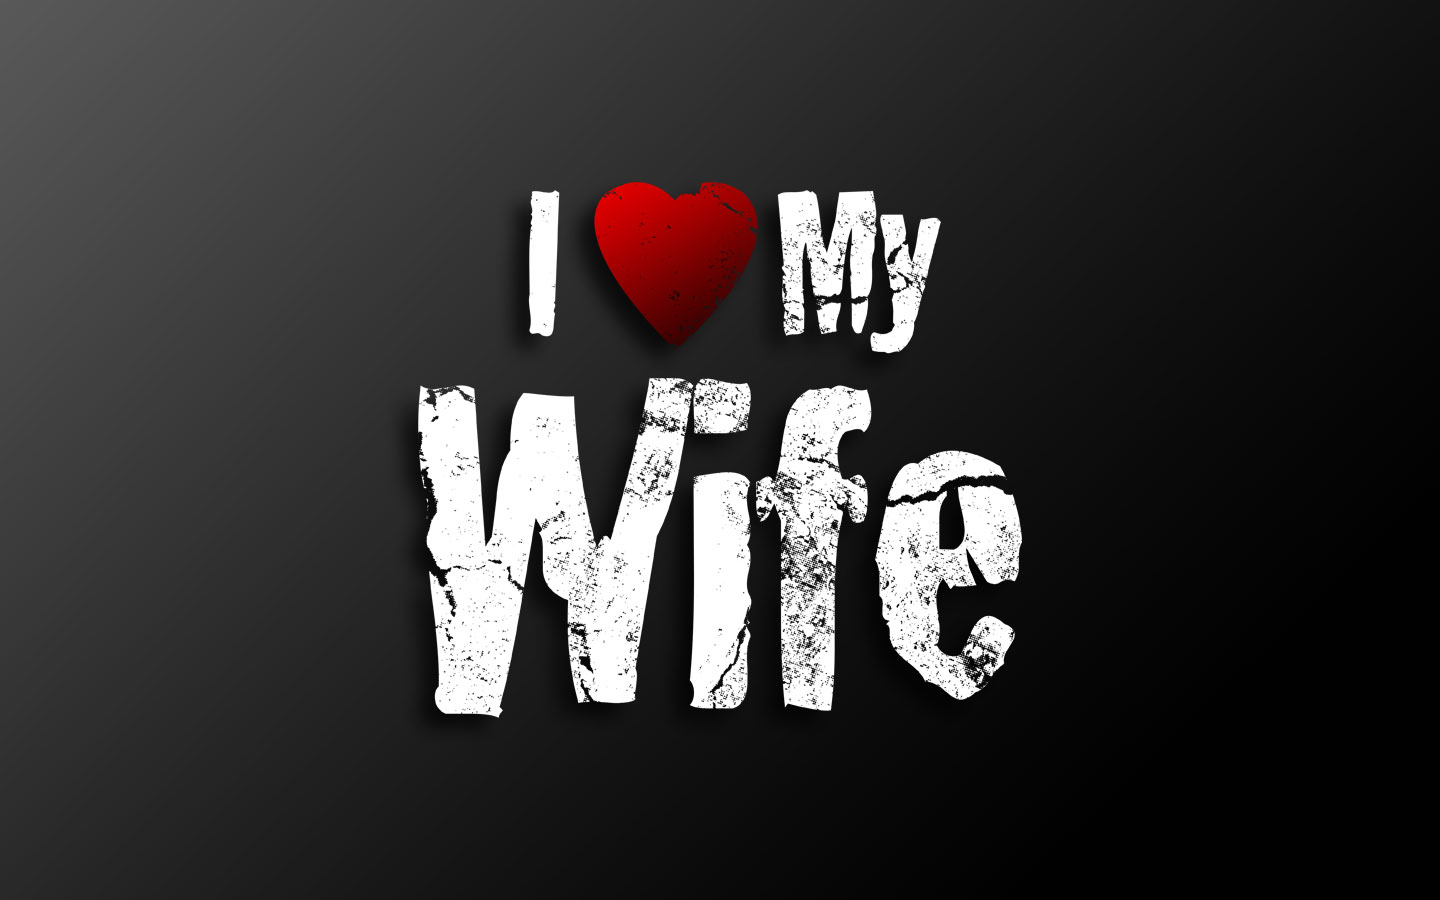 Love My Wife Wallpaper   Christian Wallpapers and Backgrounds 1440x900